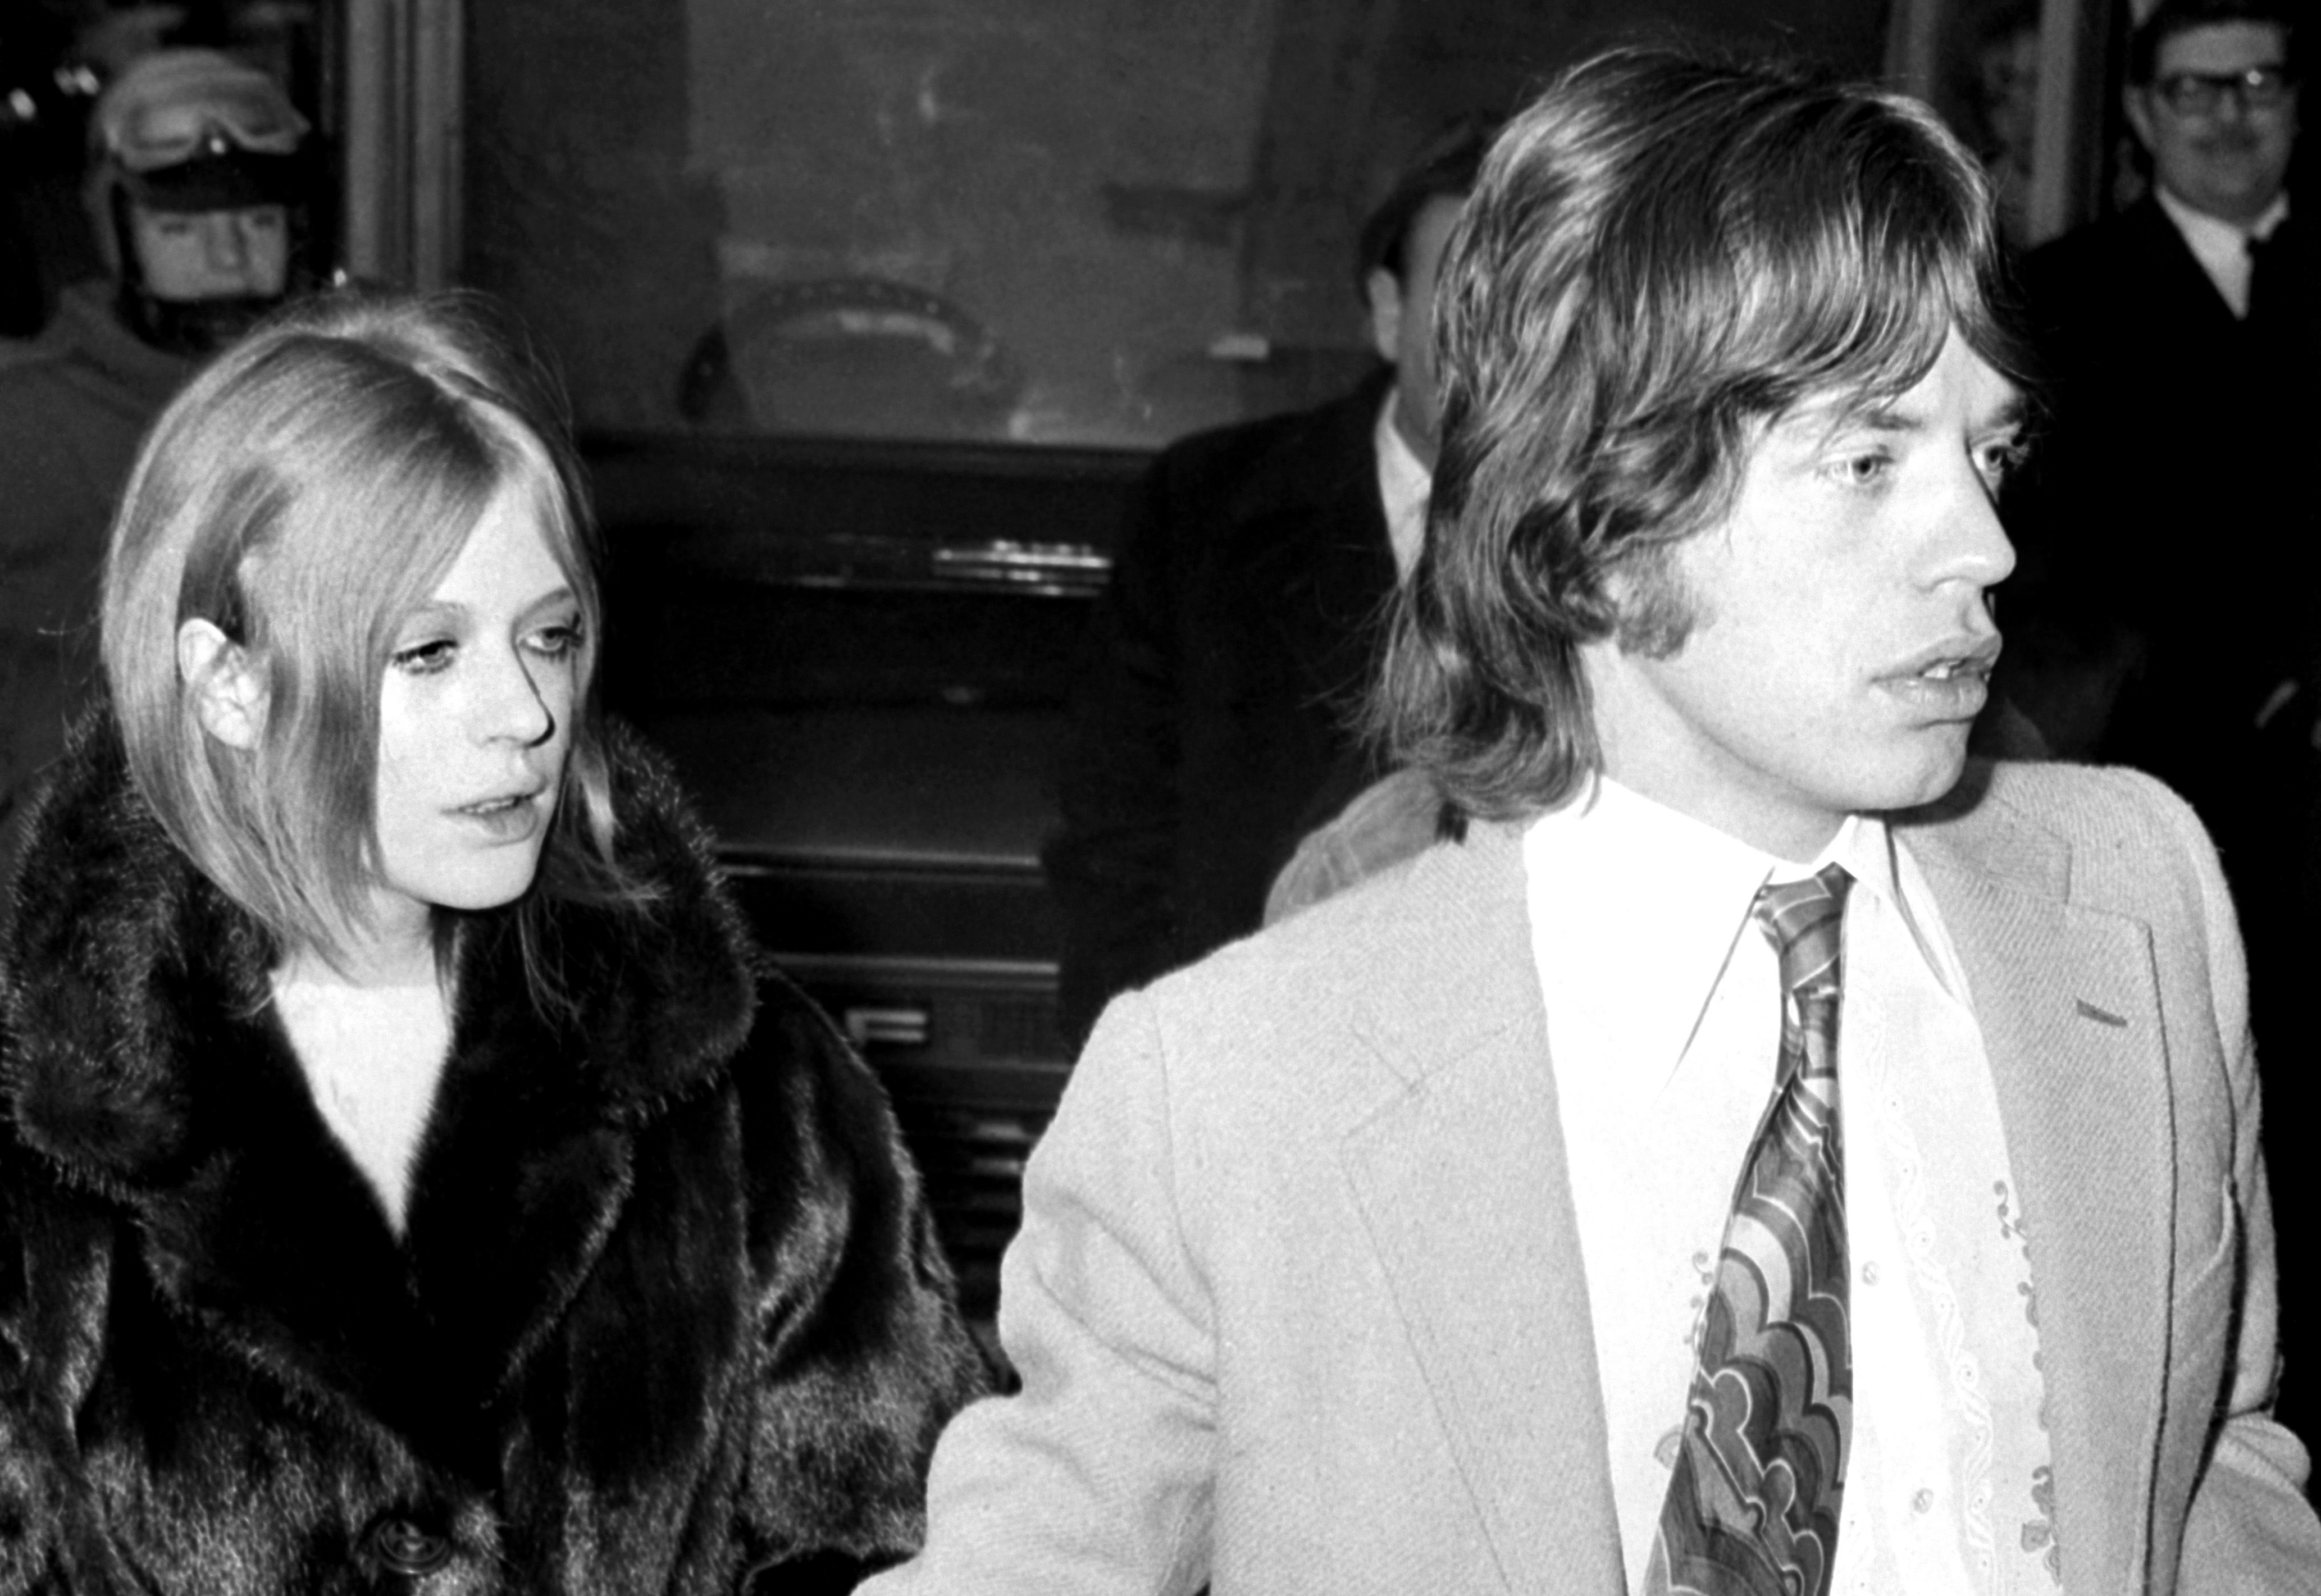 Mick Jagger, lead singer of the Rolling Stones, and Marianne Faithfull before they were due to appear in Marlborough Street Court on charges of possessing cannibis.   (Photo by PA Images via Getty Images)